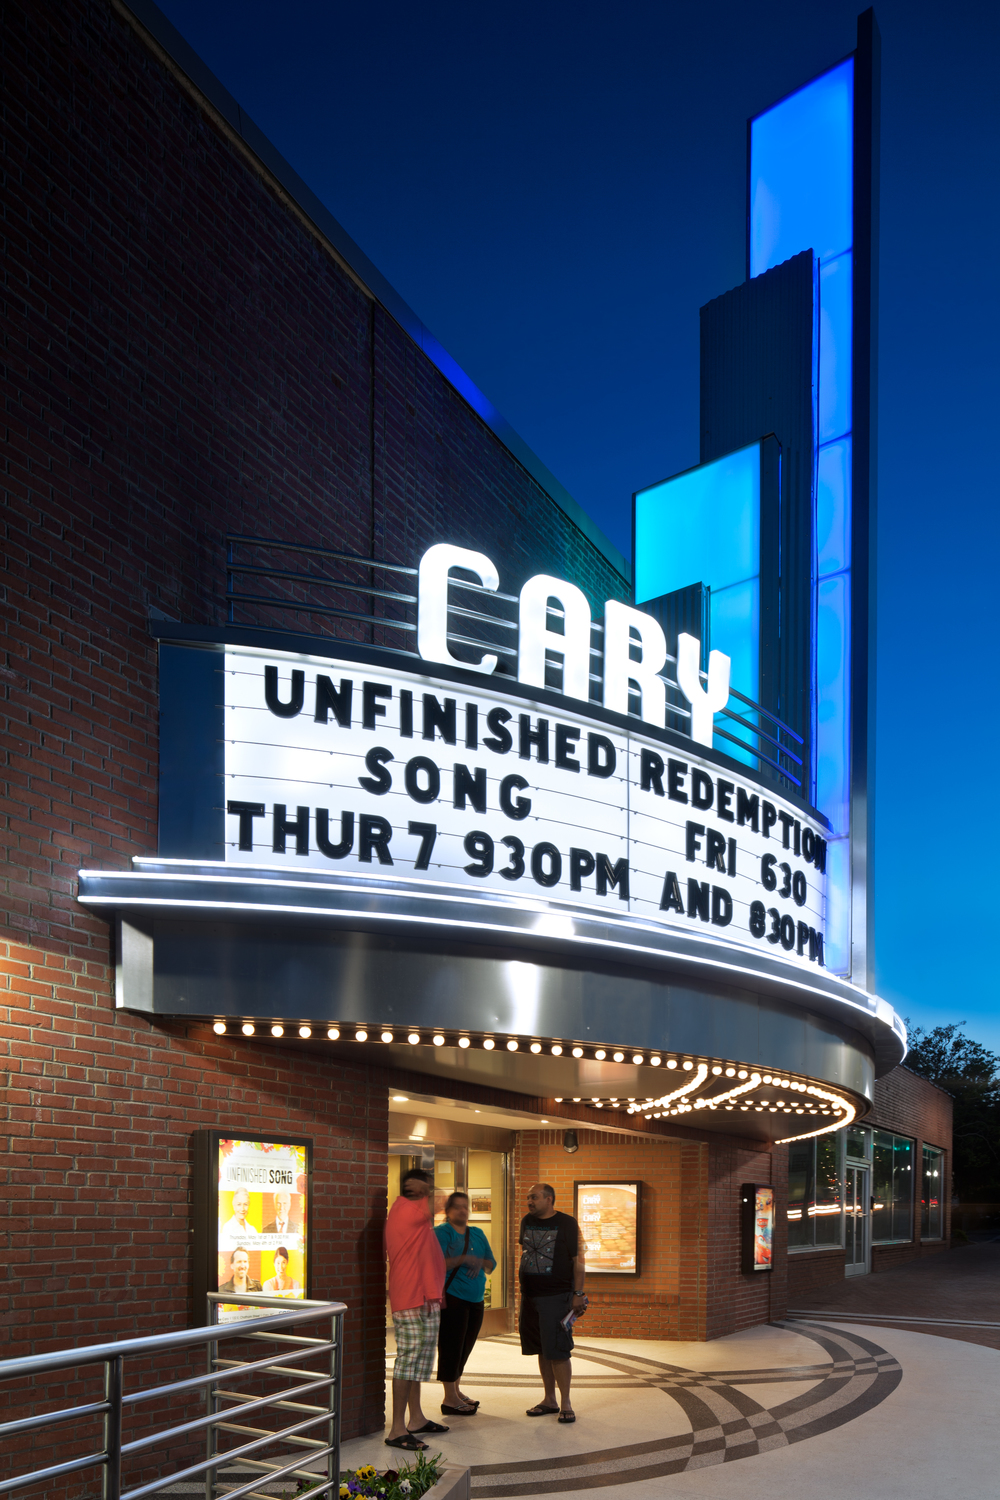 carytheater eve02.jpg